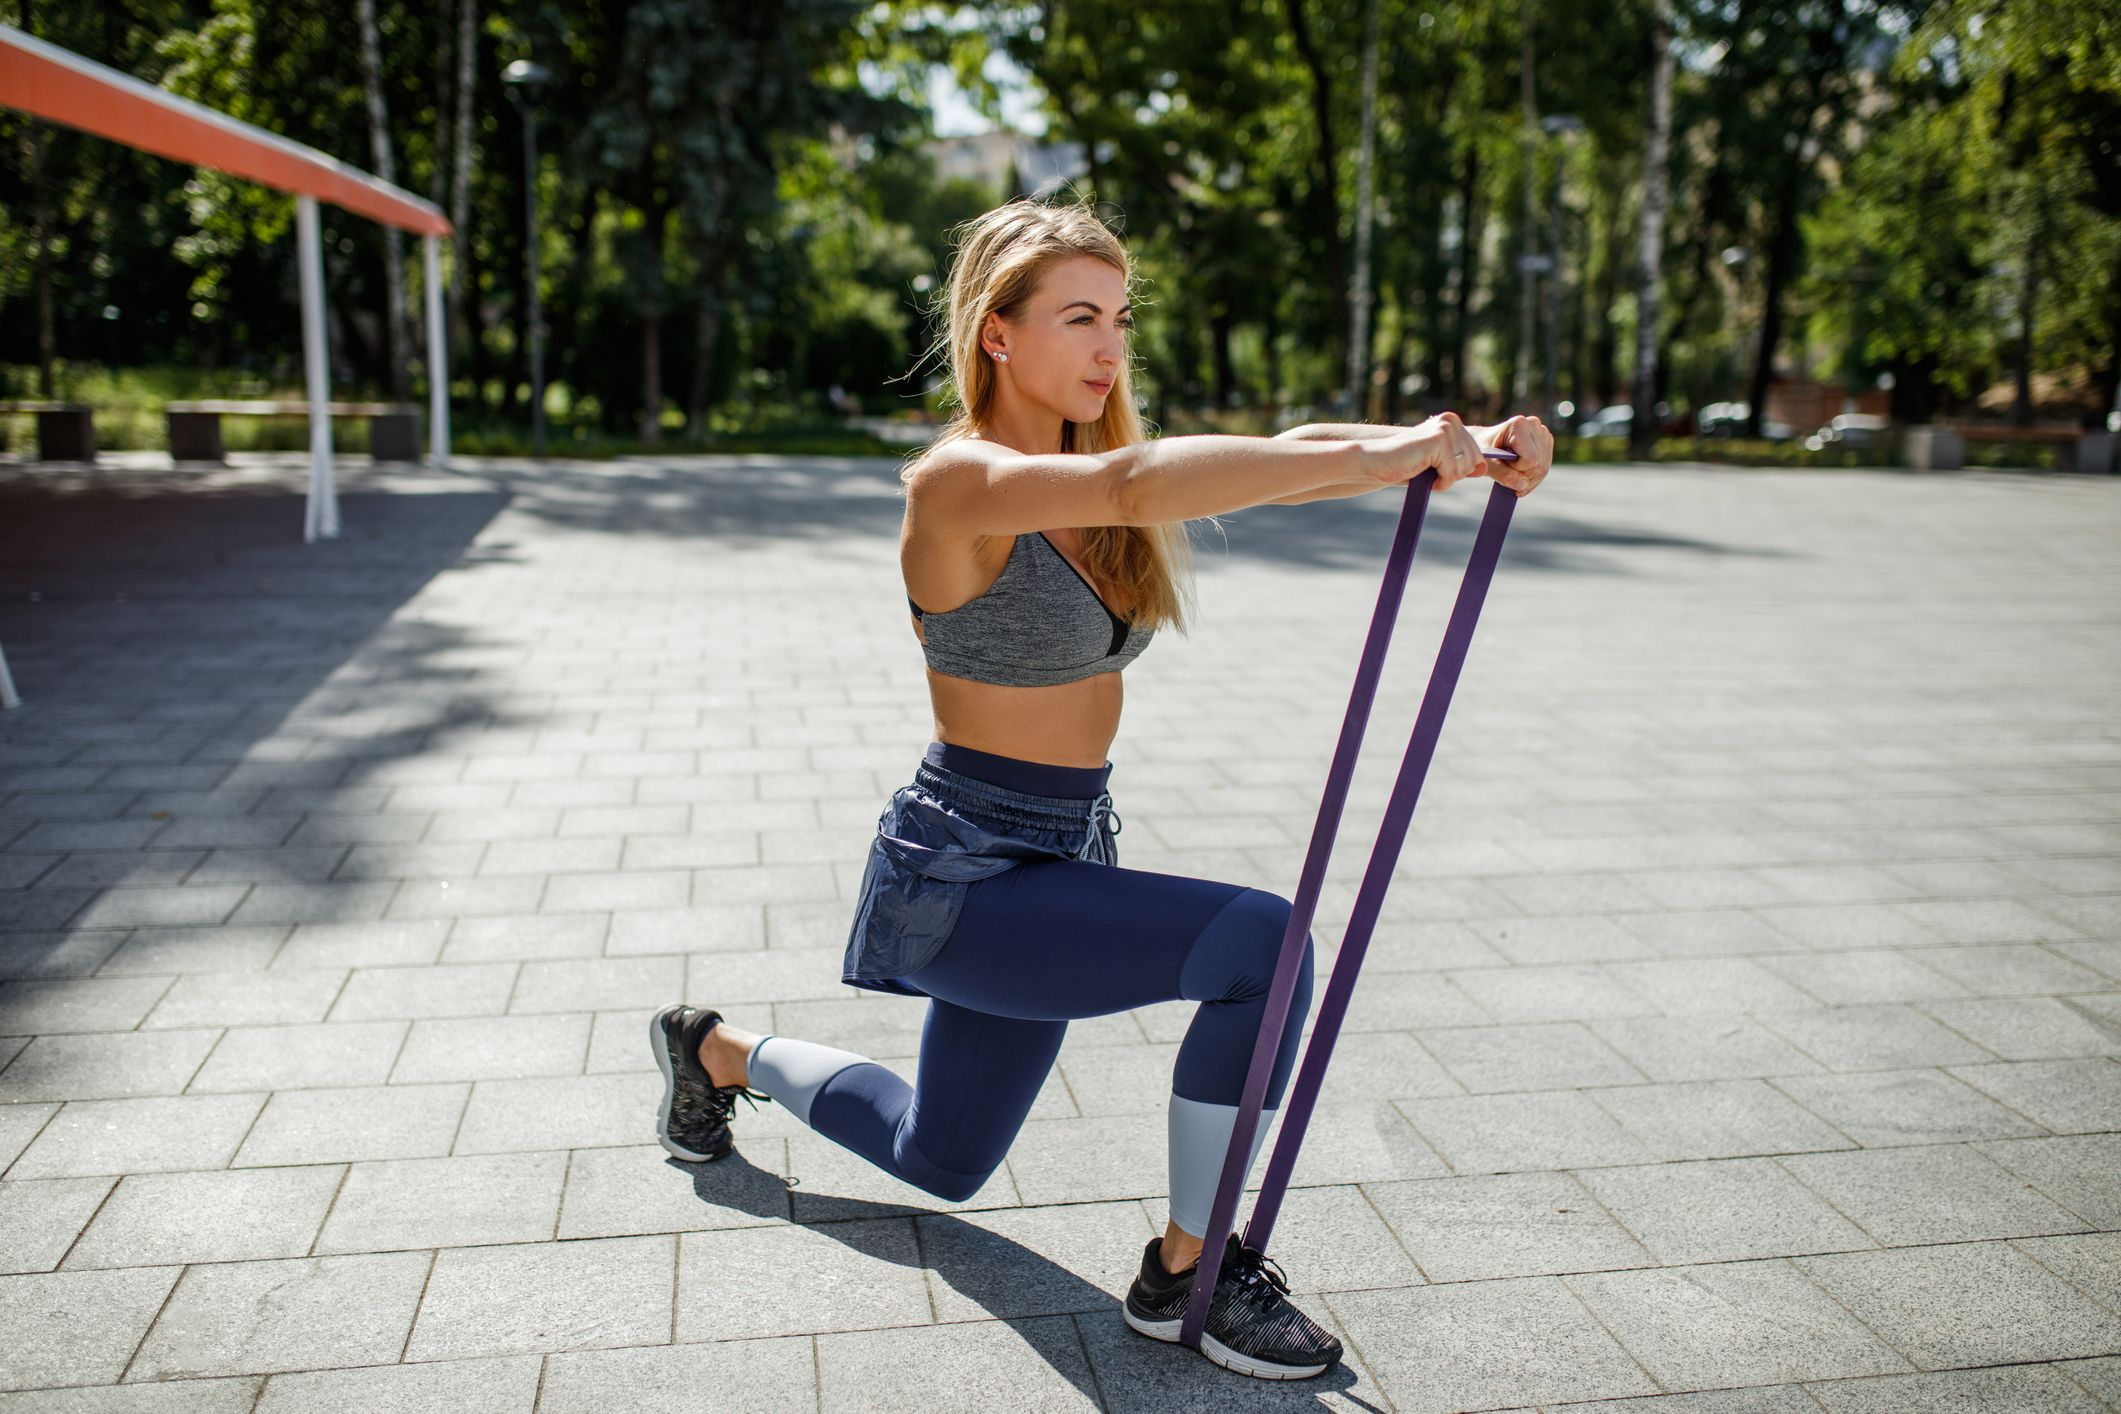 12 Resistance Band Exercises To Build Total Body Strength